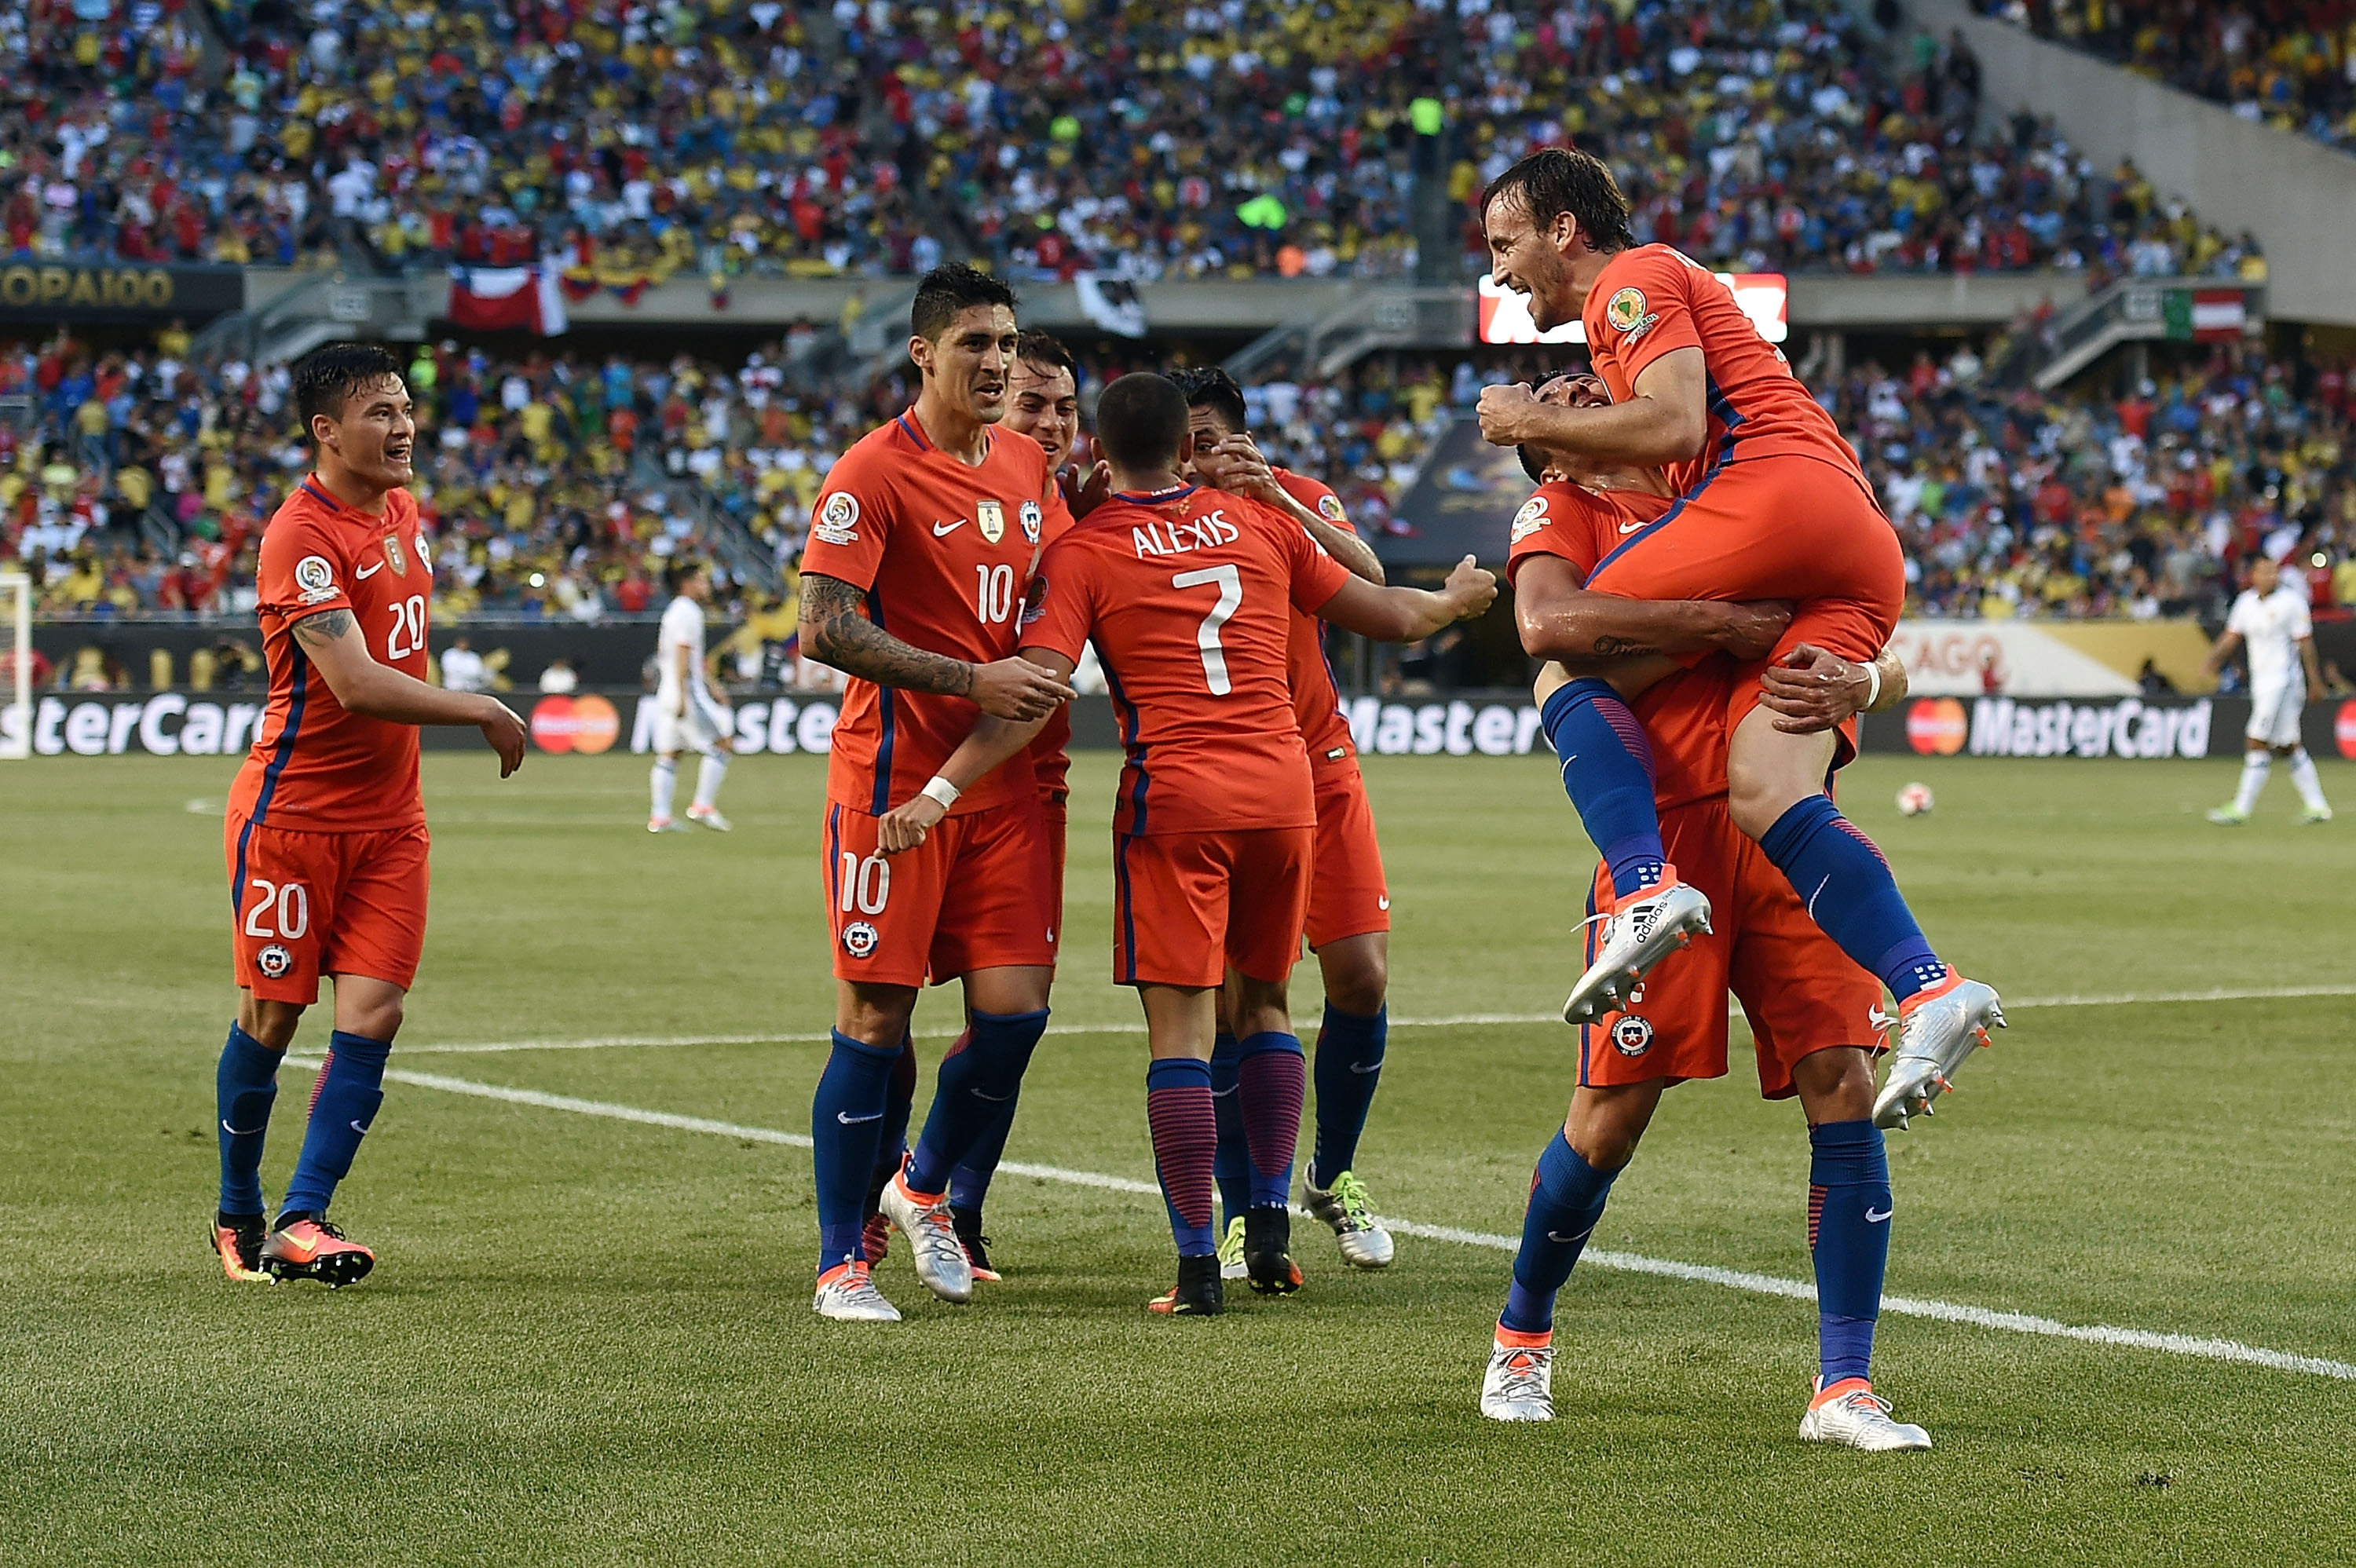 CHICAGO, IL - JUNE 22:  Jose Pedro Fuenzalida #6 of Chile celebrates a goal with teammates in the first half during a 2016 Copa America Centenario Semifinal match against Colombia at Soldier Field on June 22, 2016 in Chicago, Illinois.  (Photo by Stacy Revere/Getty Images)